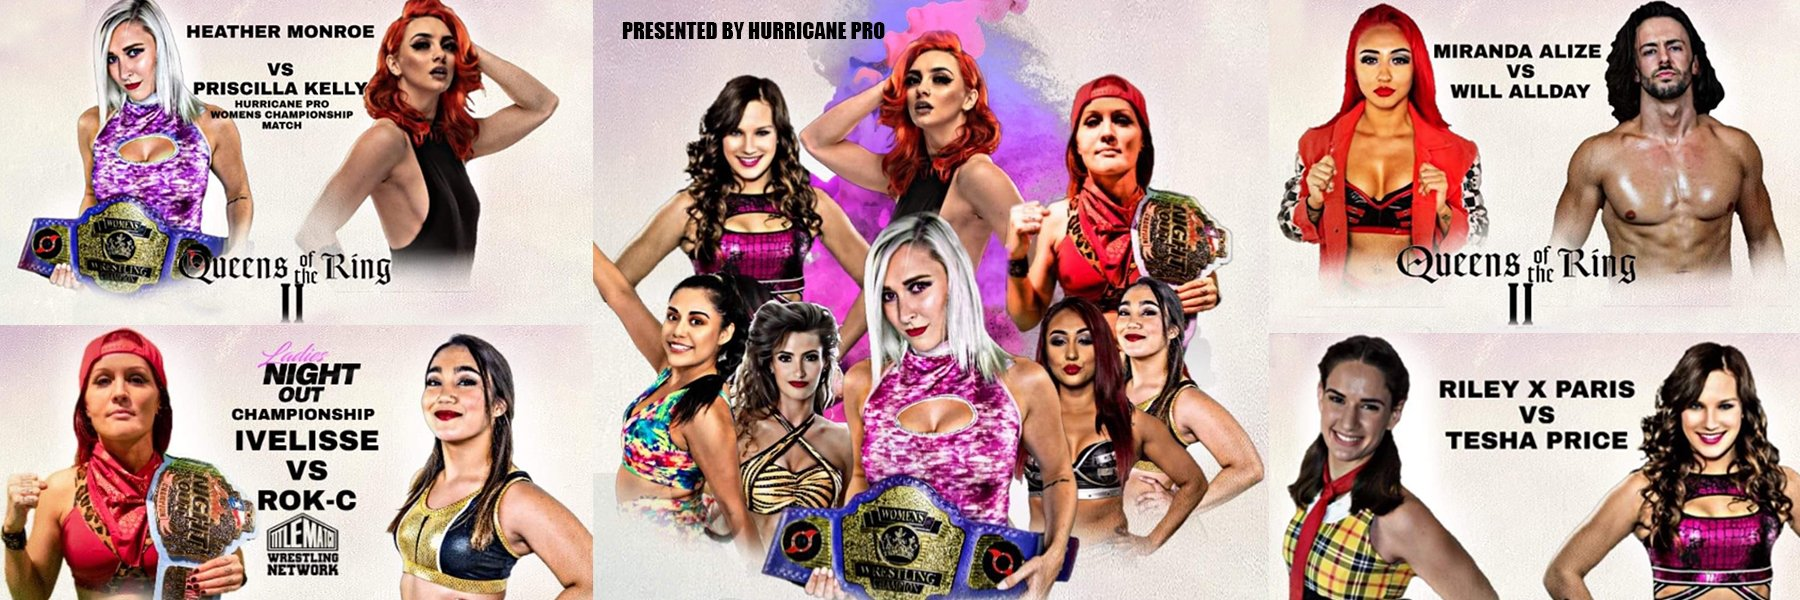 Queens of the Ring 2 - Coming 1/18/20 Heather Monroe vs Priscilla Kelly